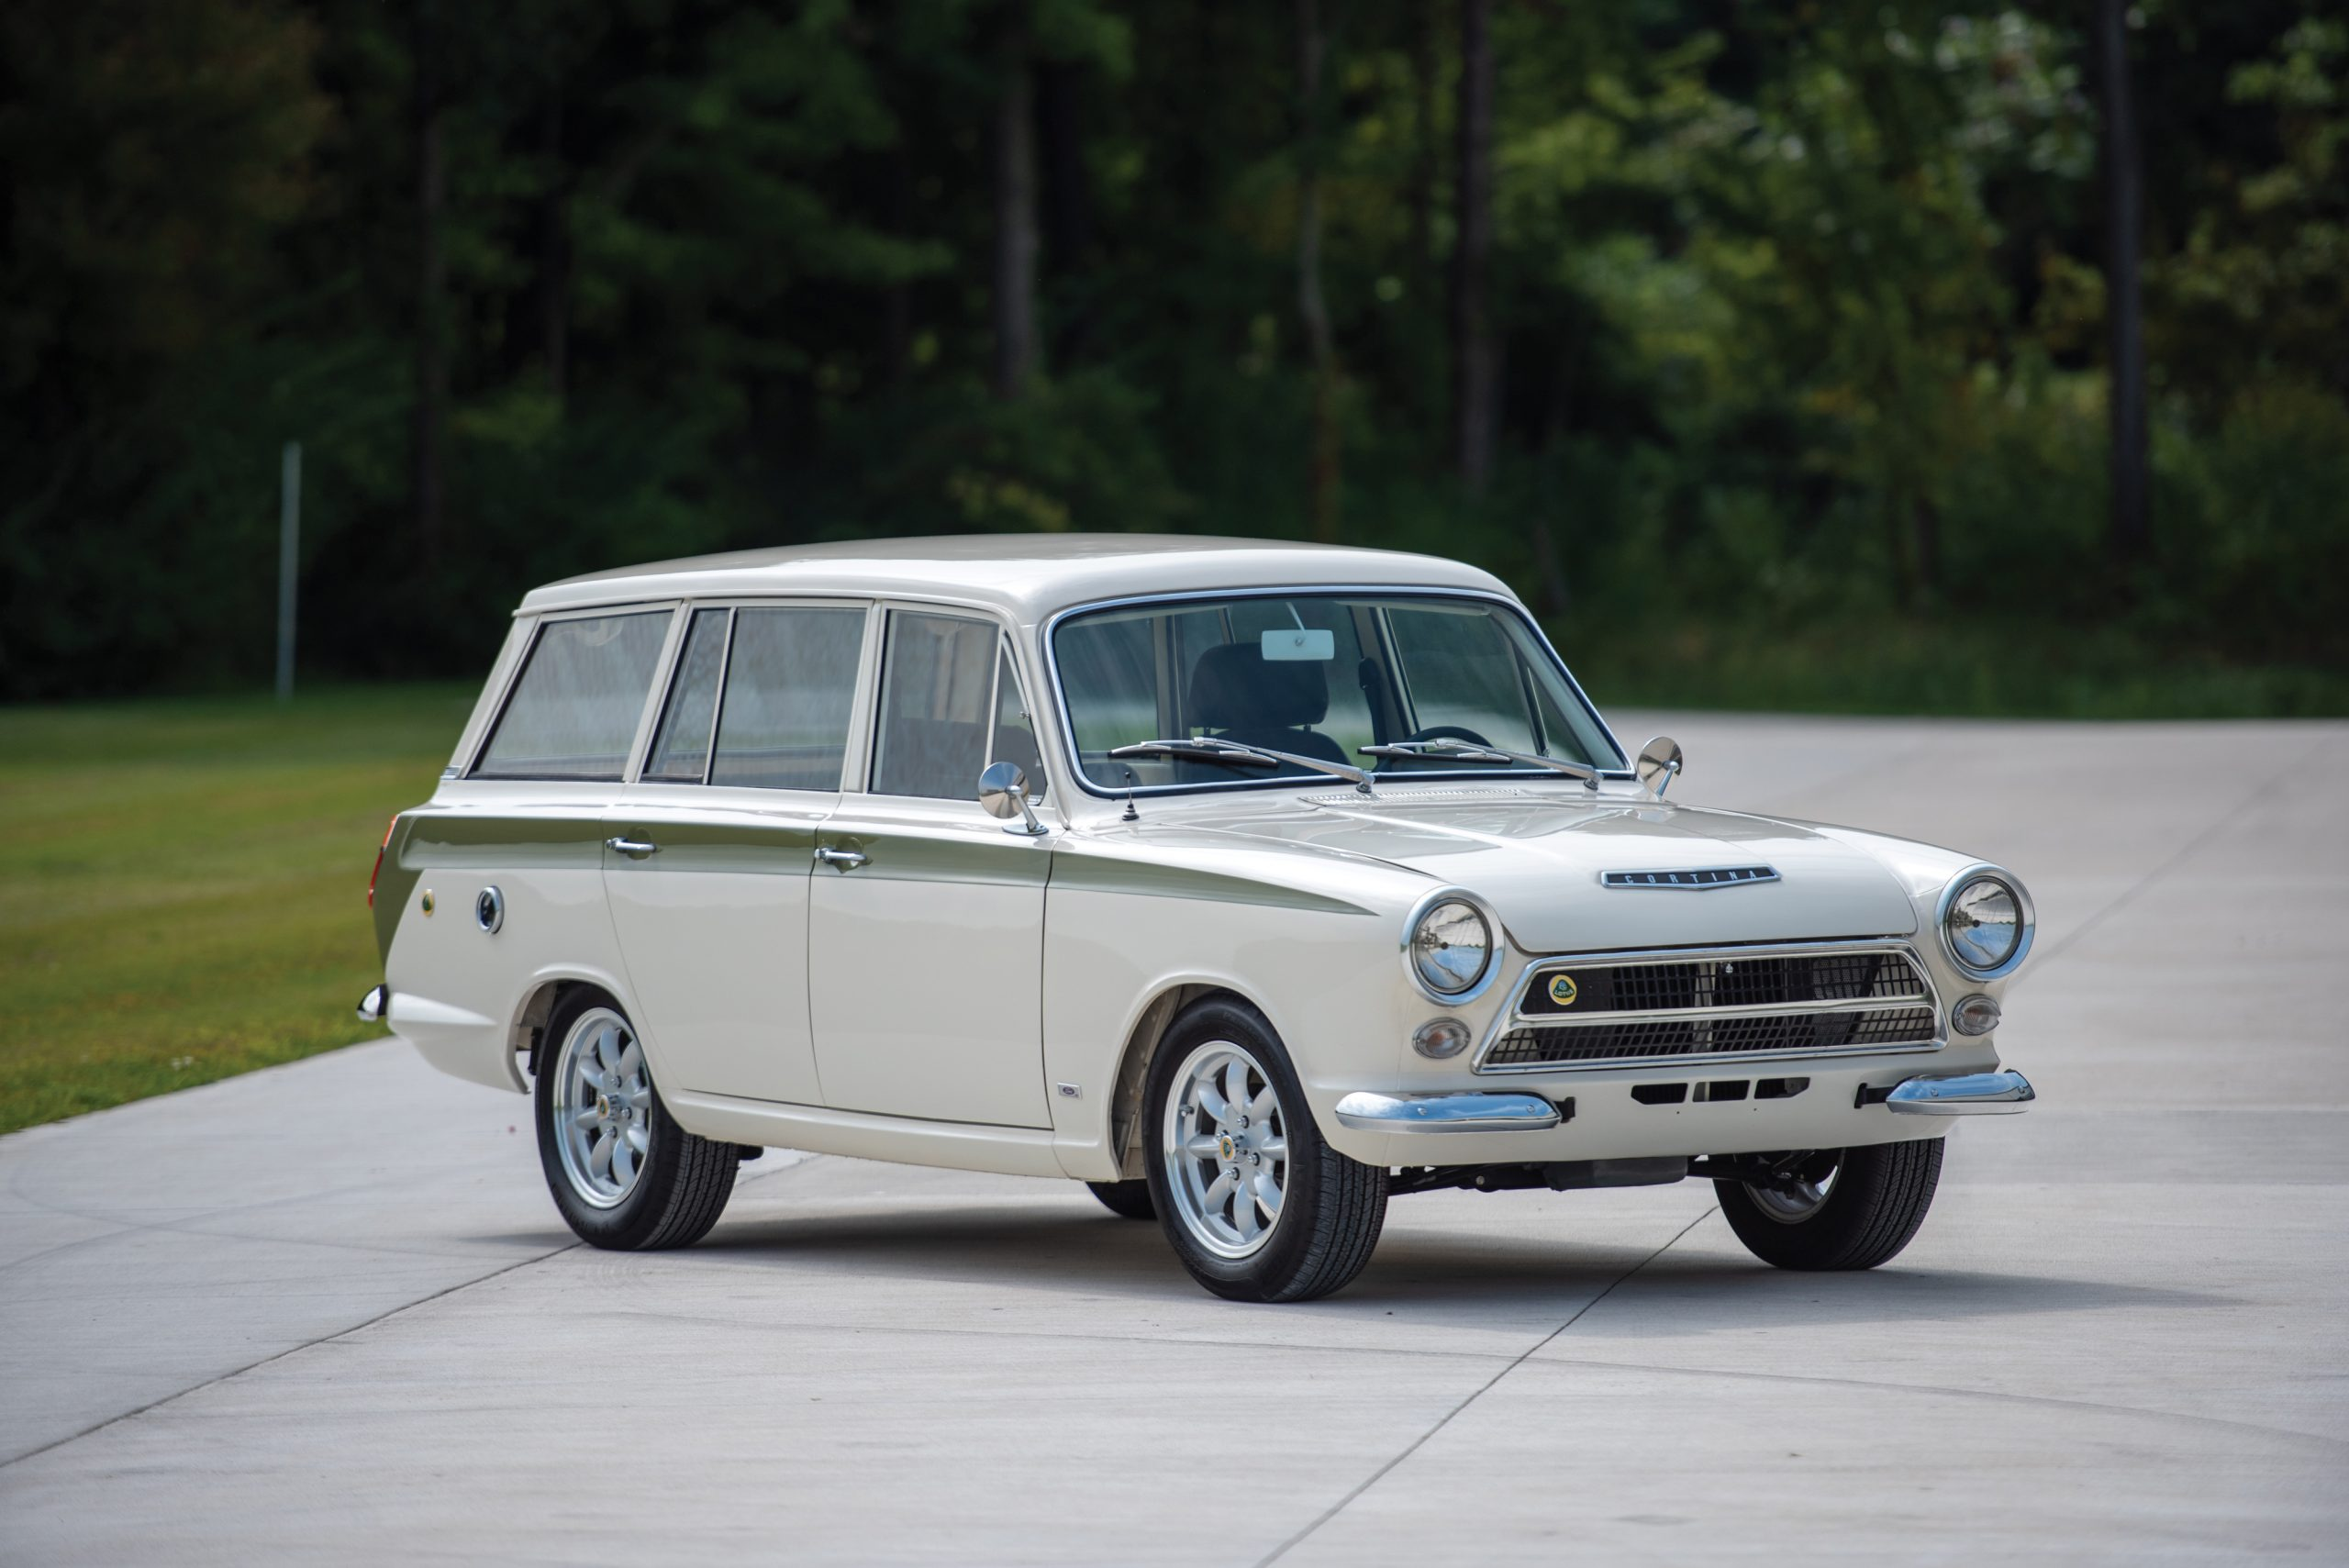 Drifting to the poodle parlour: Rare Lotus Cortina estate up for grabs